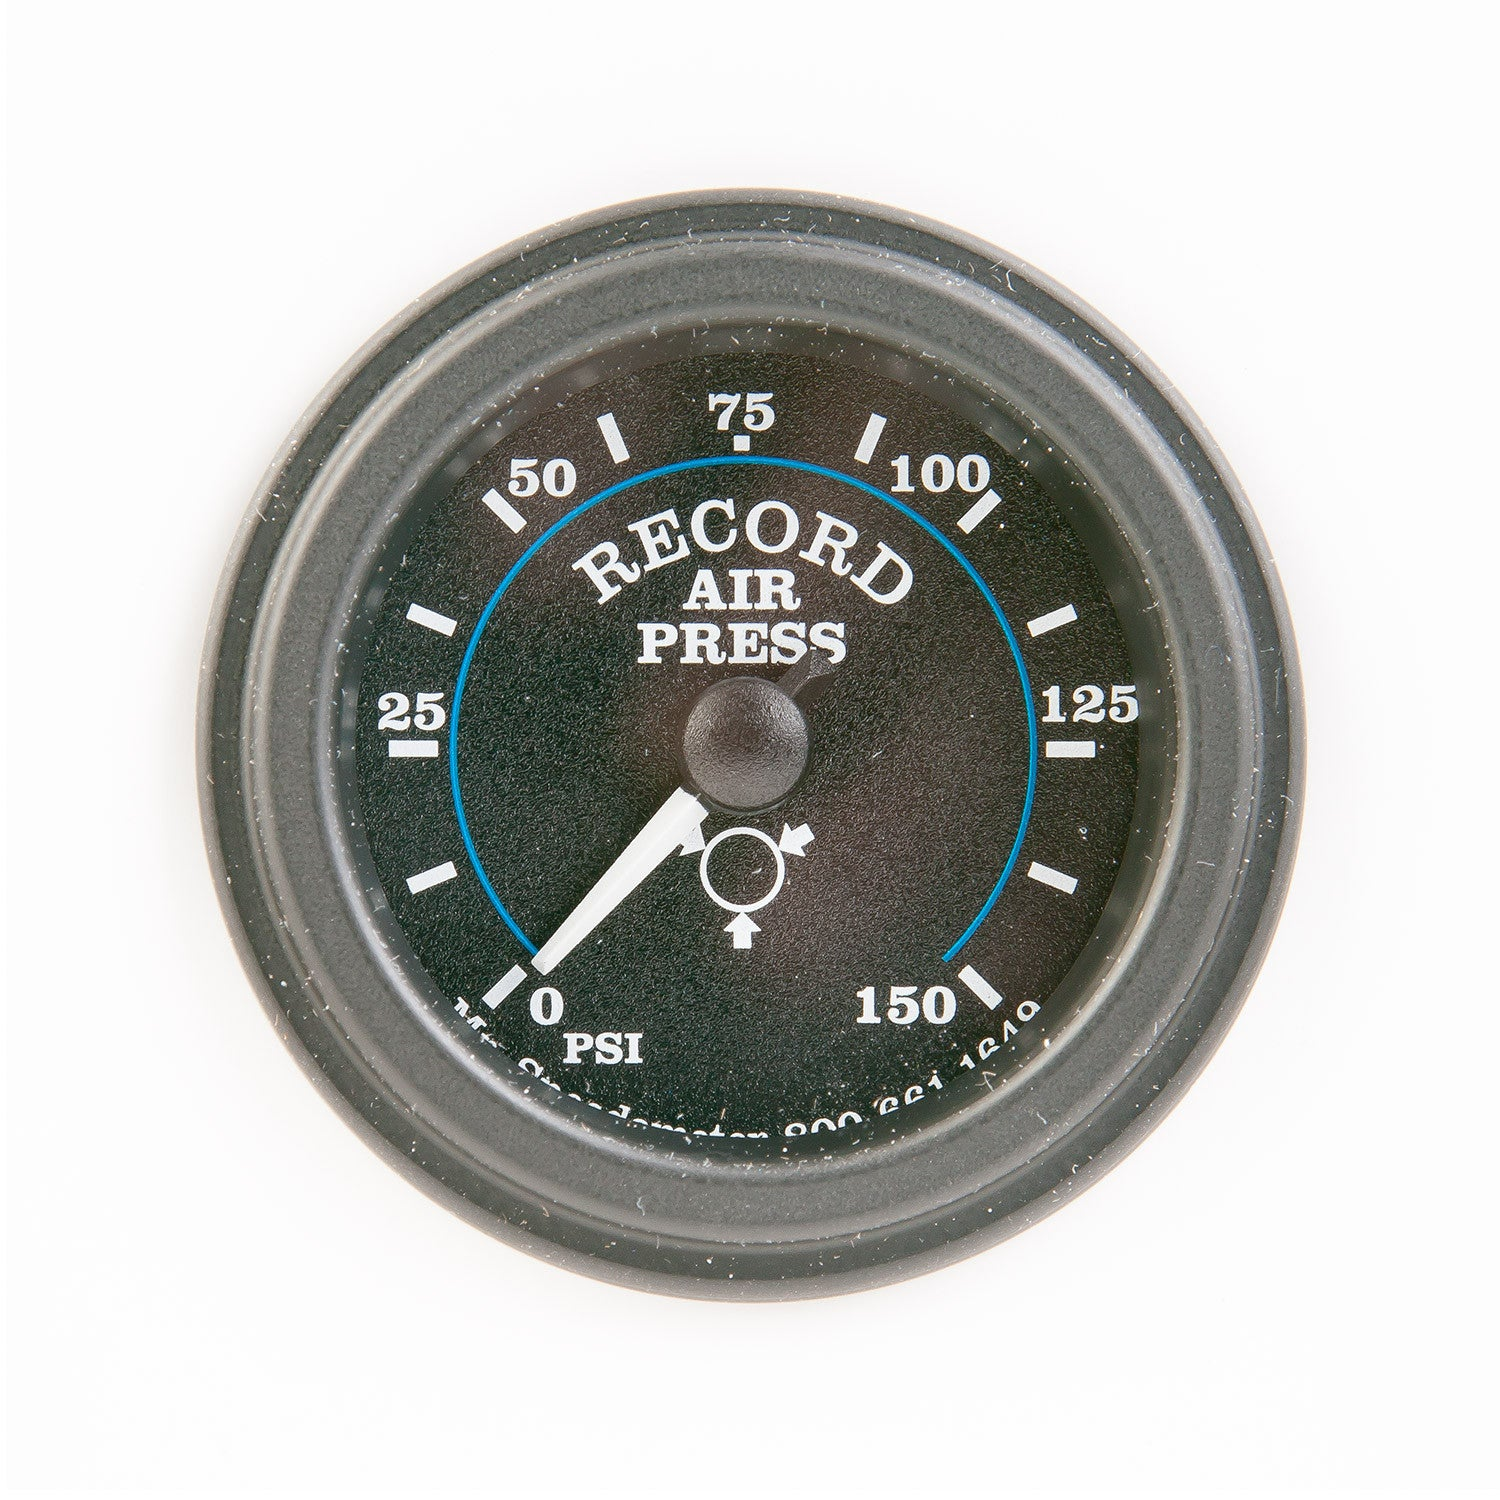 Air pressure gauge record technologies air pressure gauge 0 150 psi mechanical record technologies publicscrutiny Image collections